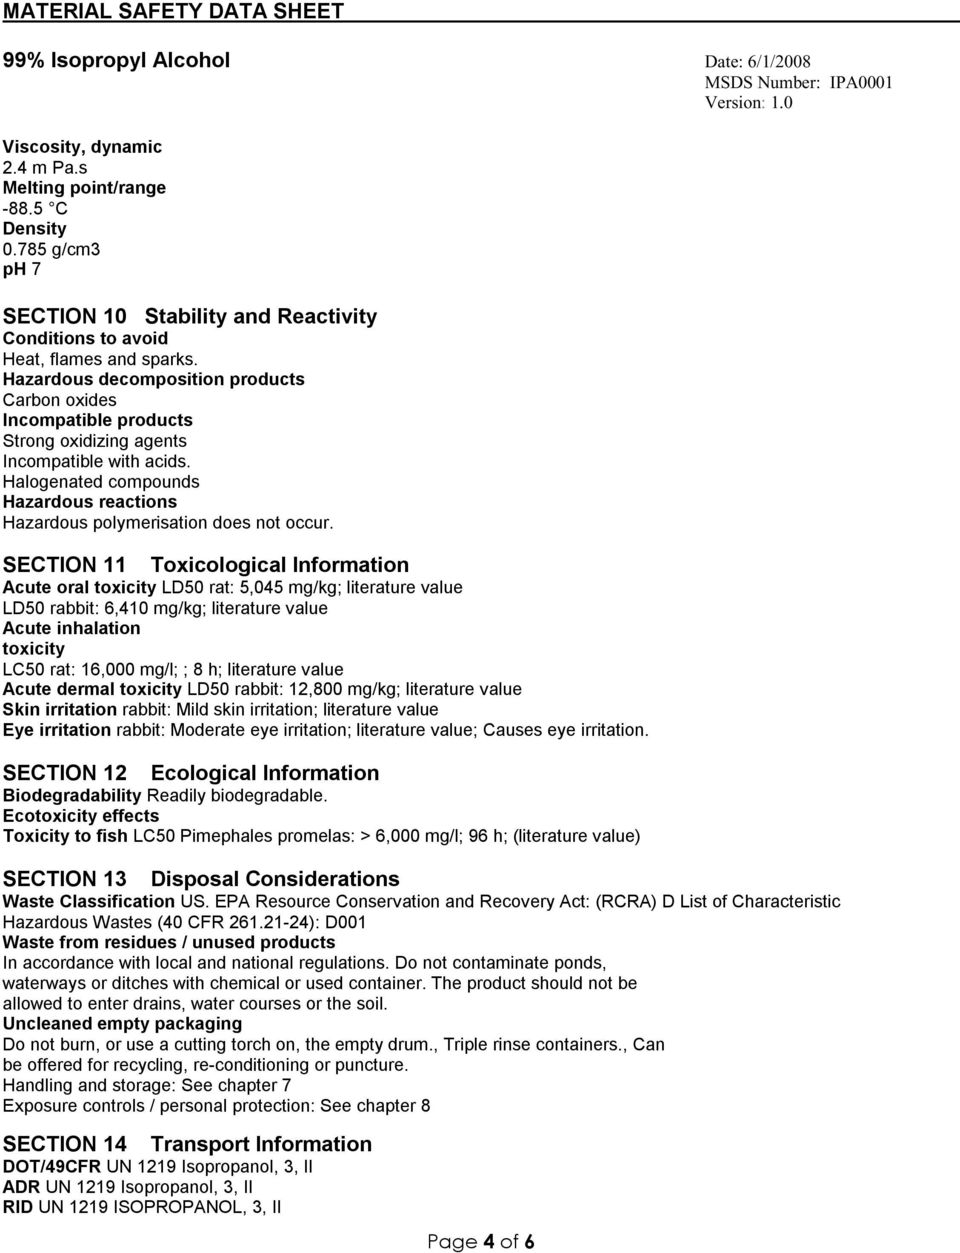 Material Safety Data Sheet 99 Isopropyl Alcohol Date 6 1 2008 Msds Number Ipa0001 Version Pdf Free Download